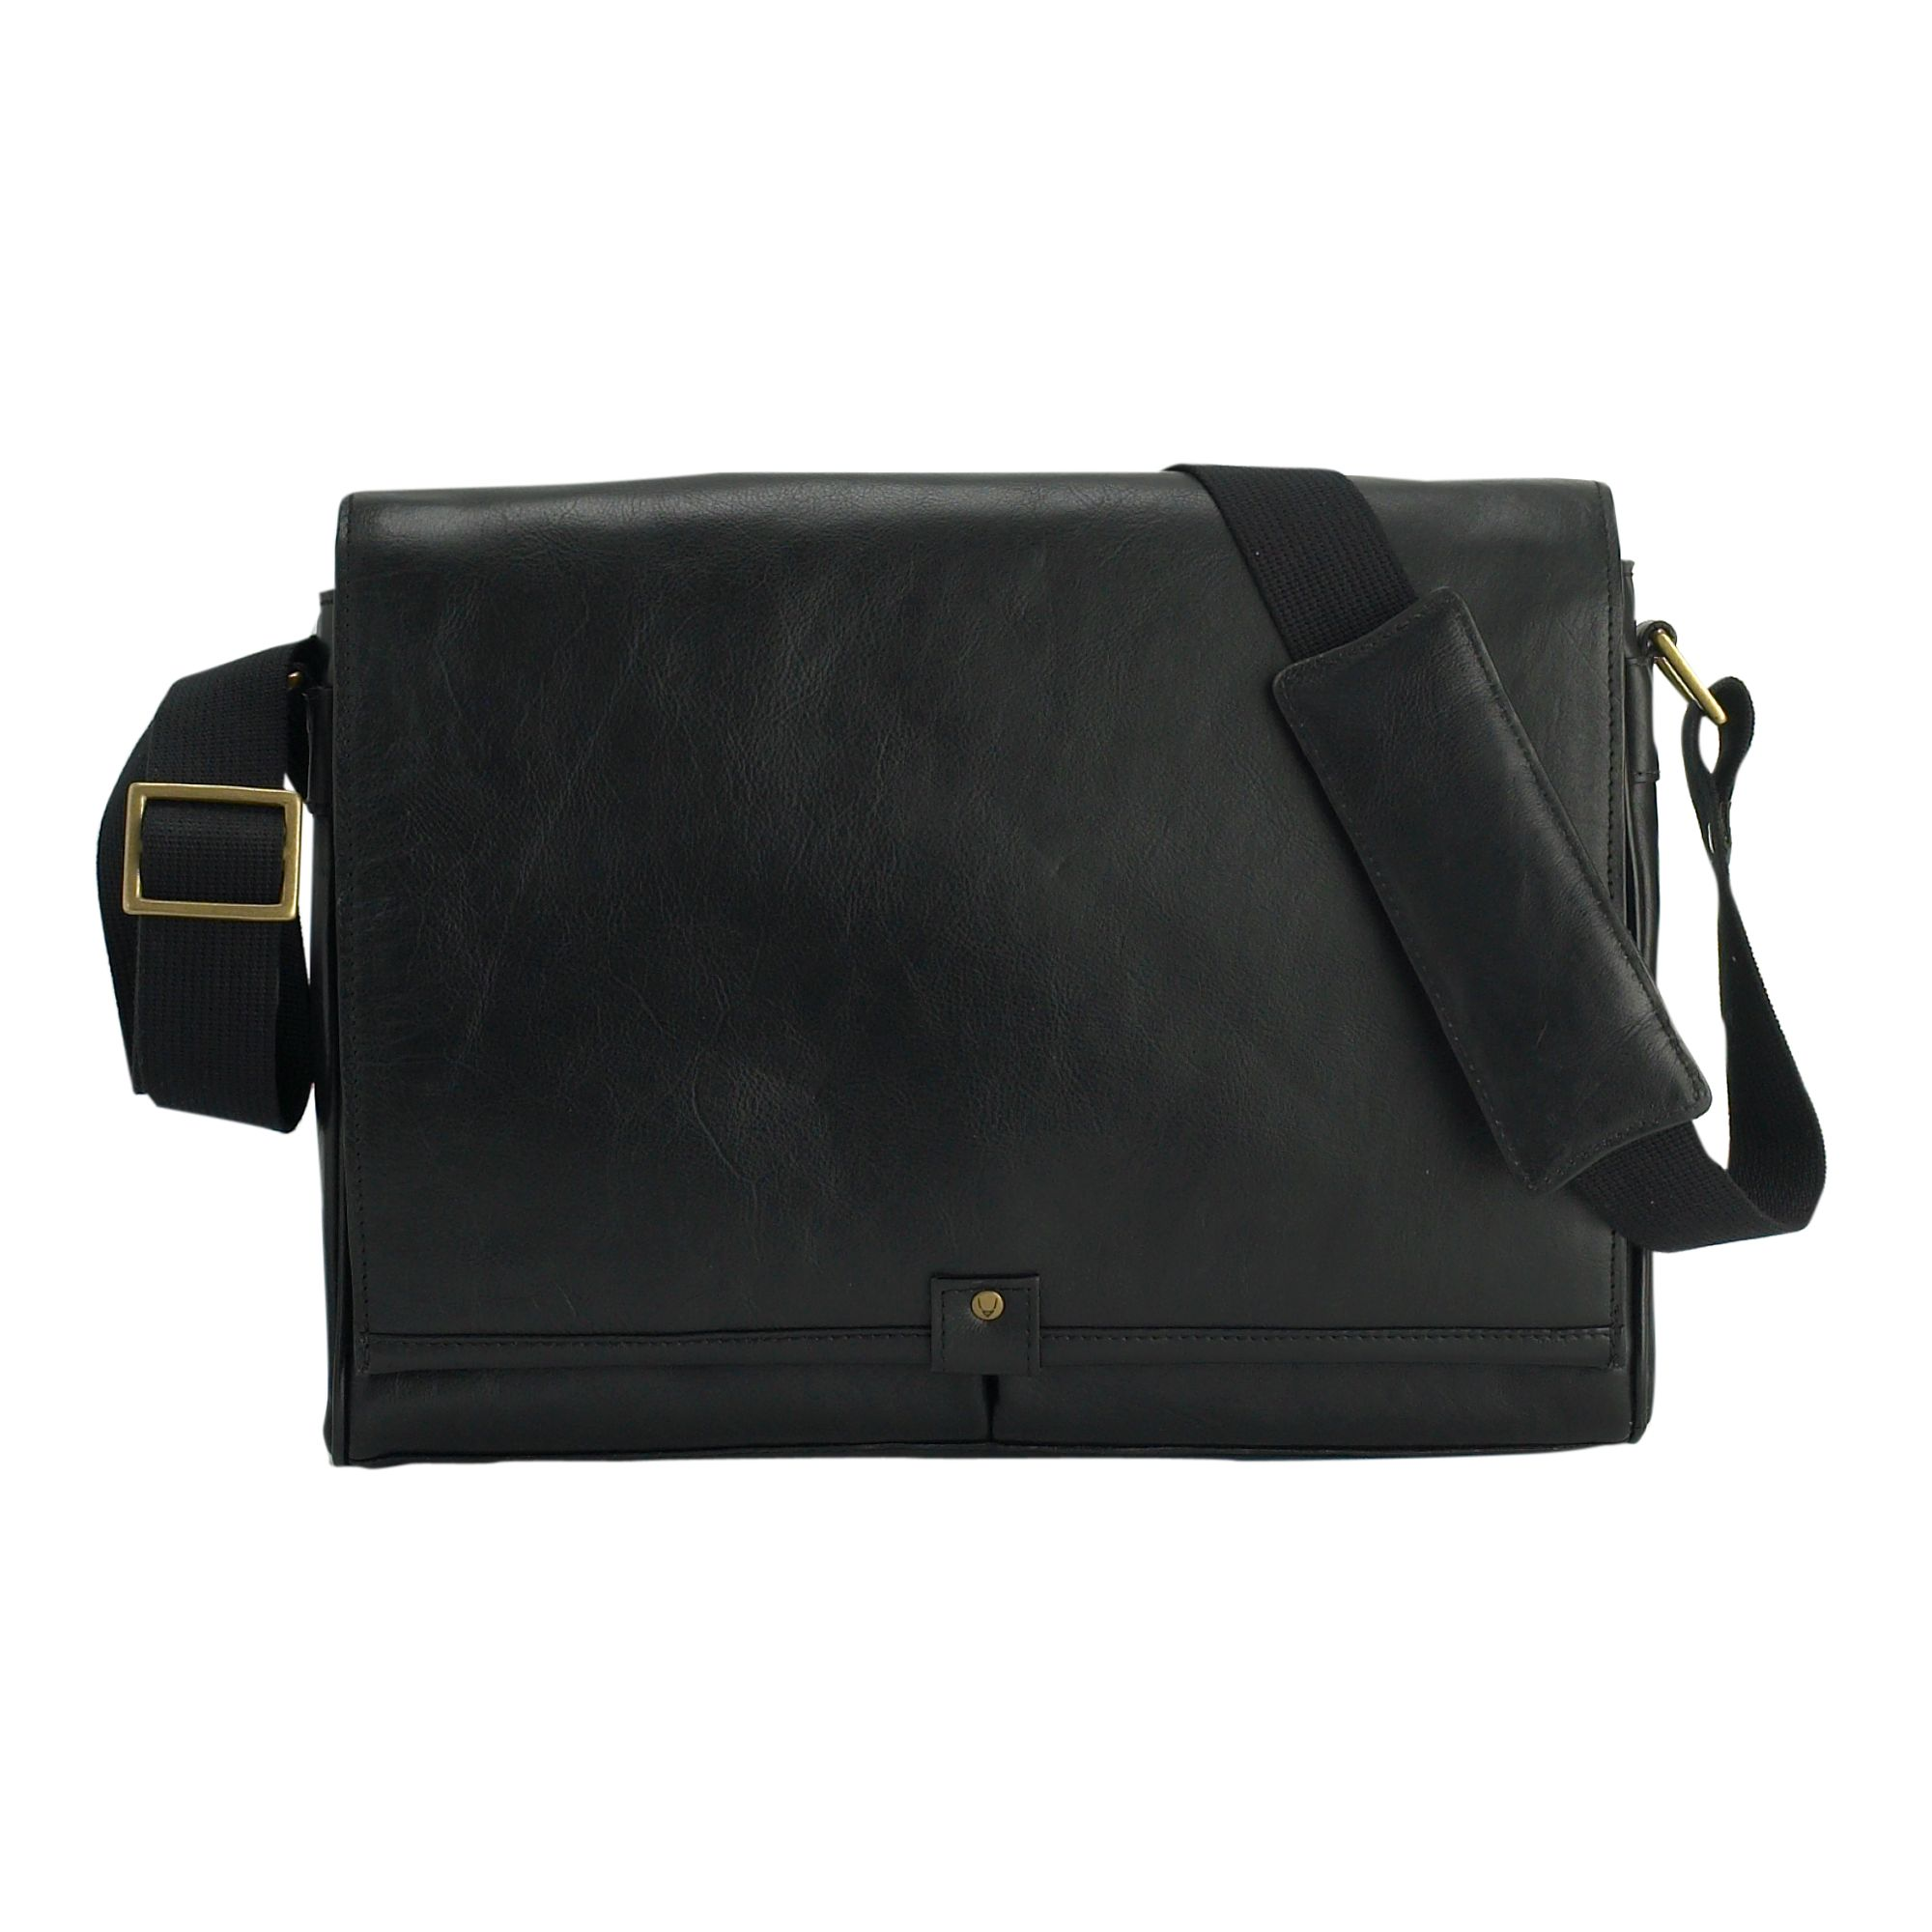 Hidesign Appleton despatch bag